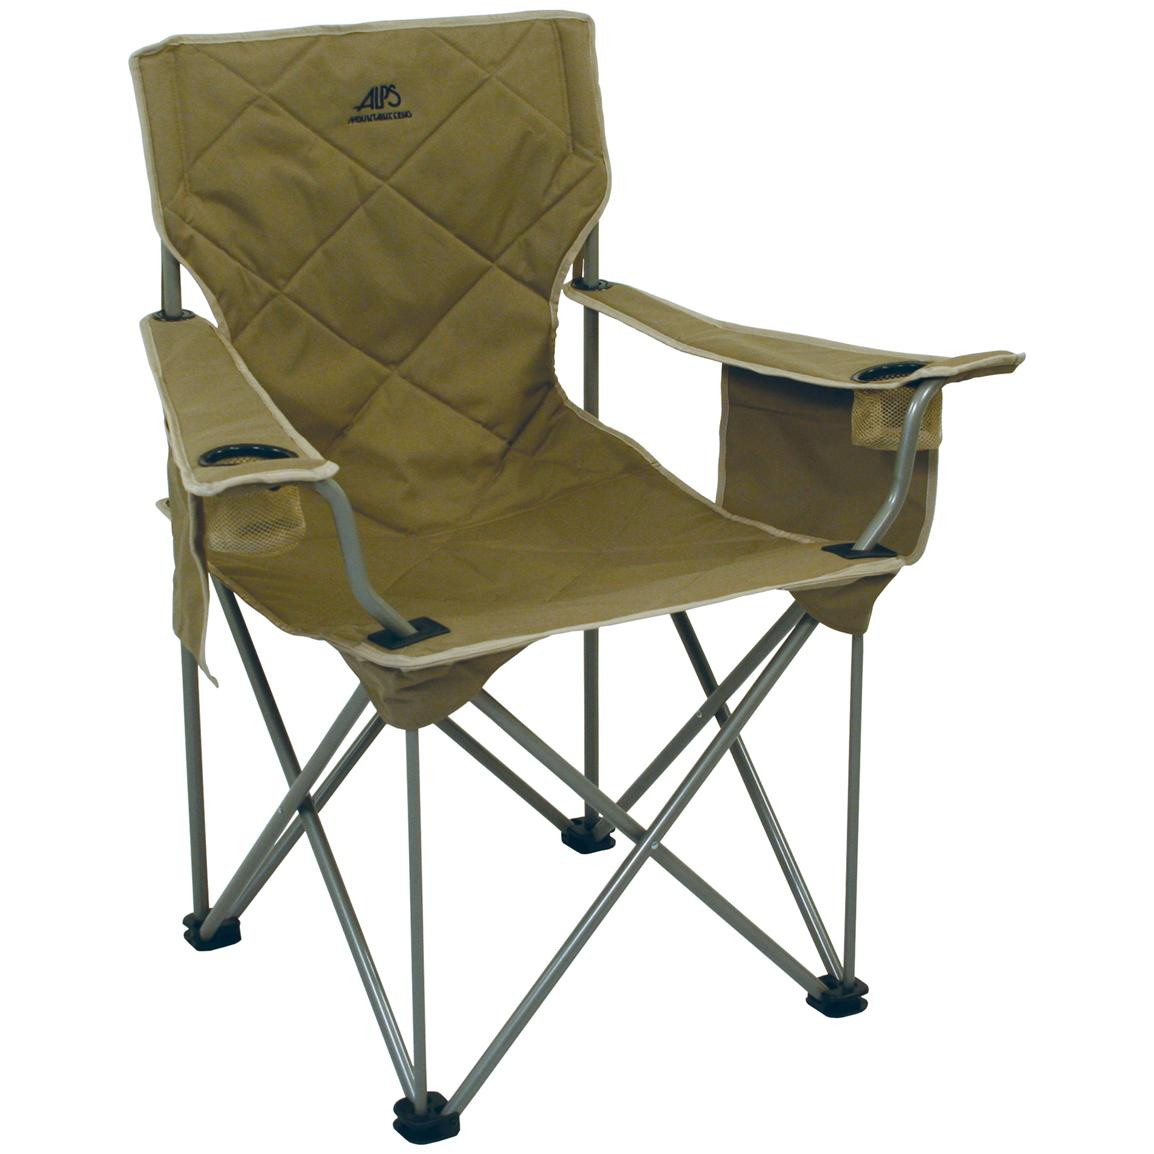 Alps Mountaineering Chair Alps Mountaineering King Kong Chair 155133 Patio